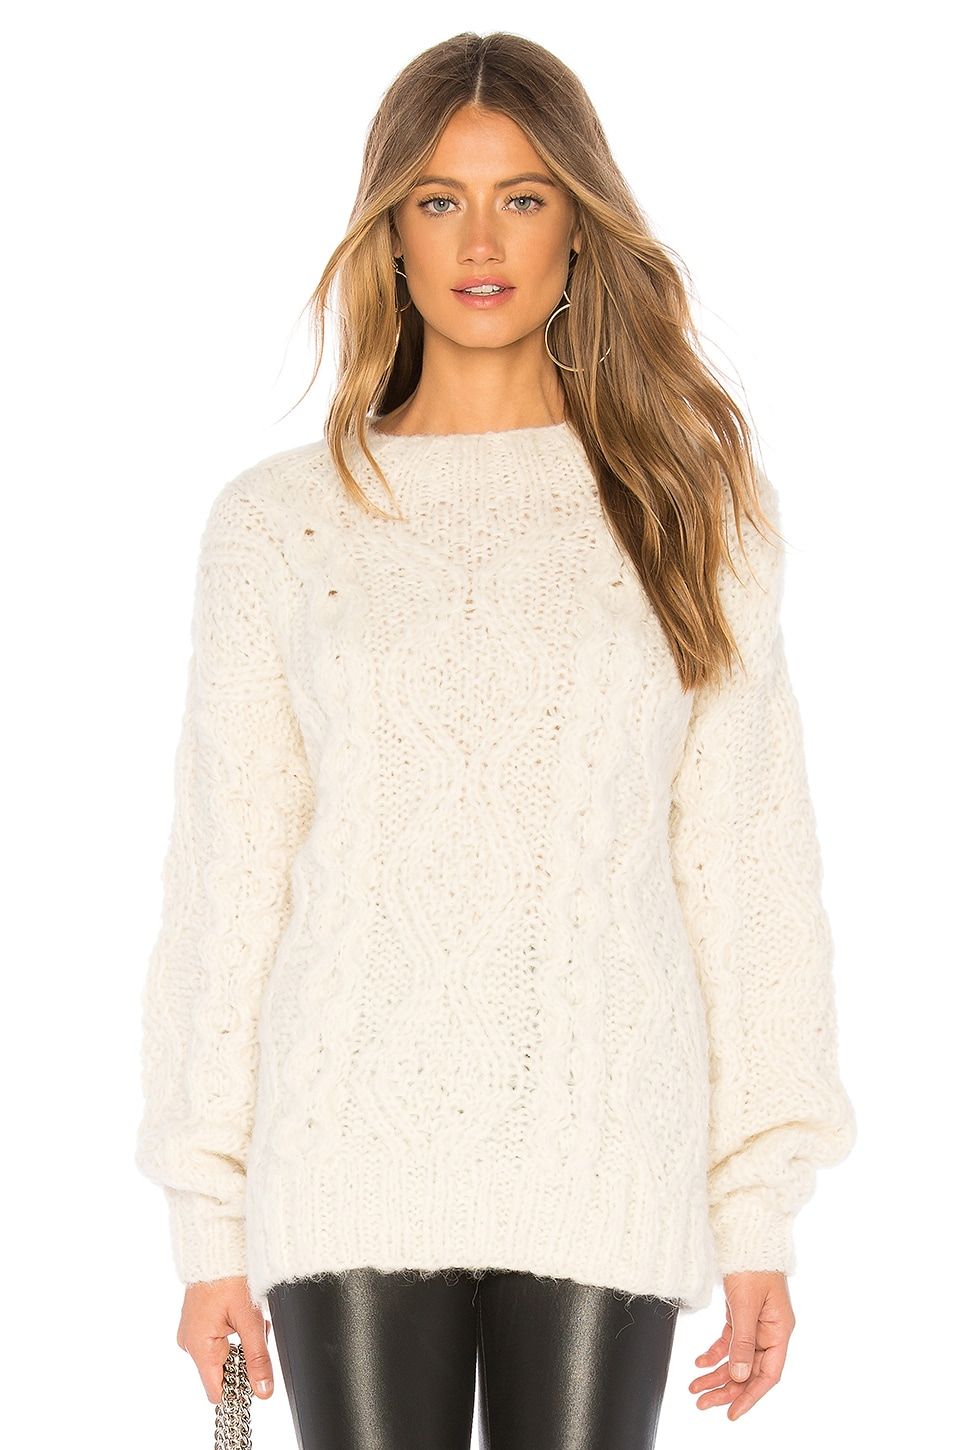 AYNI Mabel Sweater in Ivory